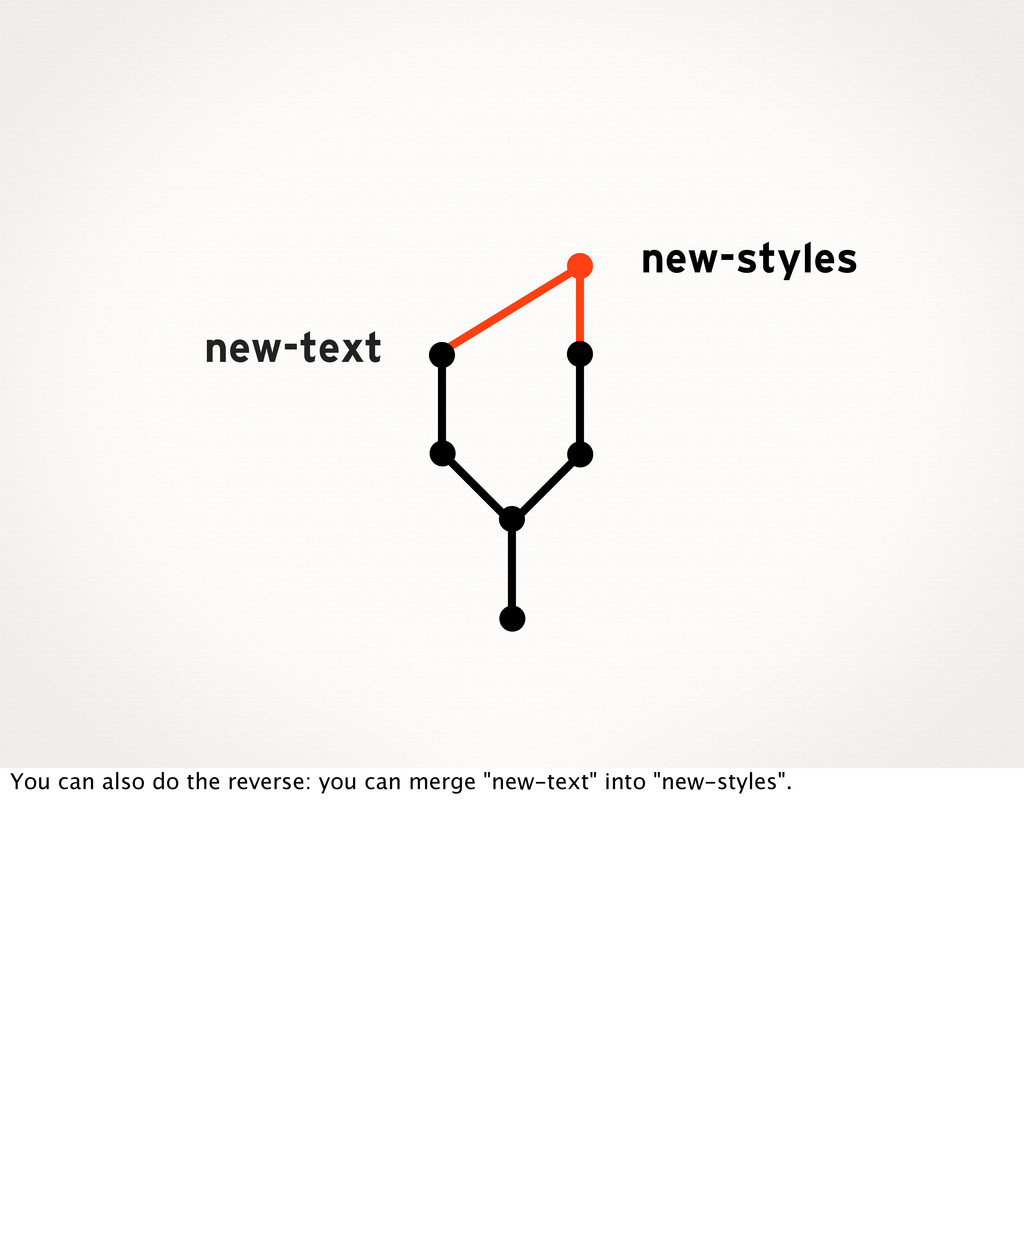 new-styles new-text You can also do the reverse...